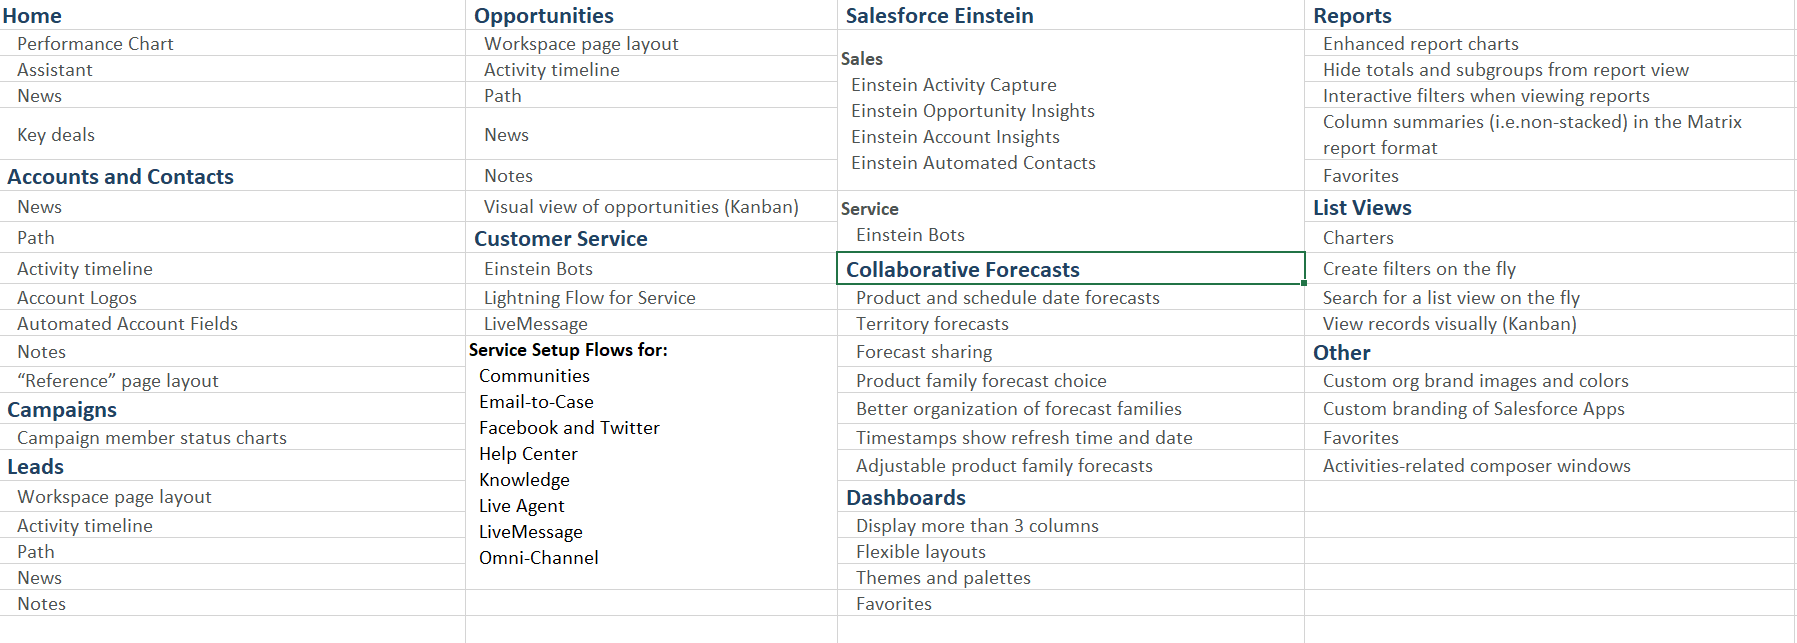 In the below image you can see list of new features introduced in Salesforce Lightning.